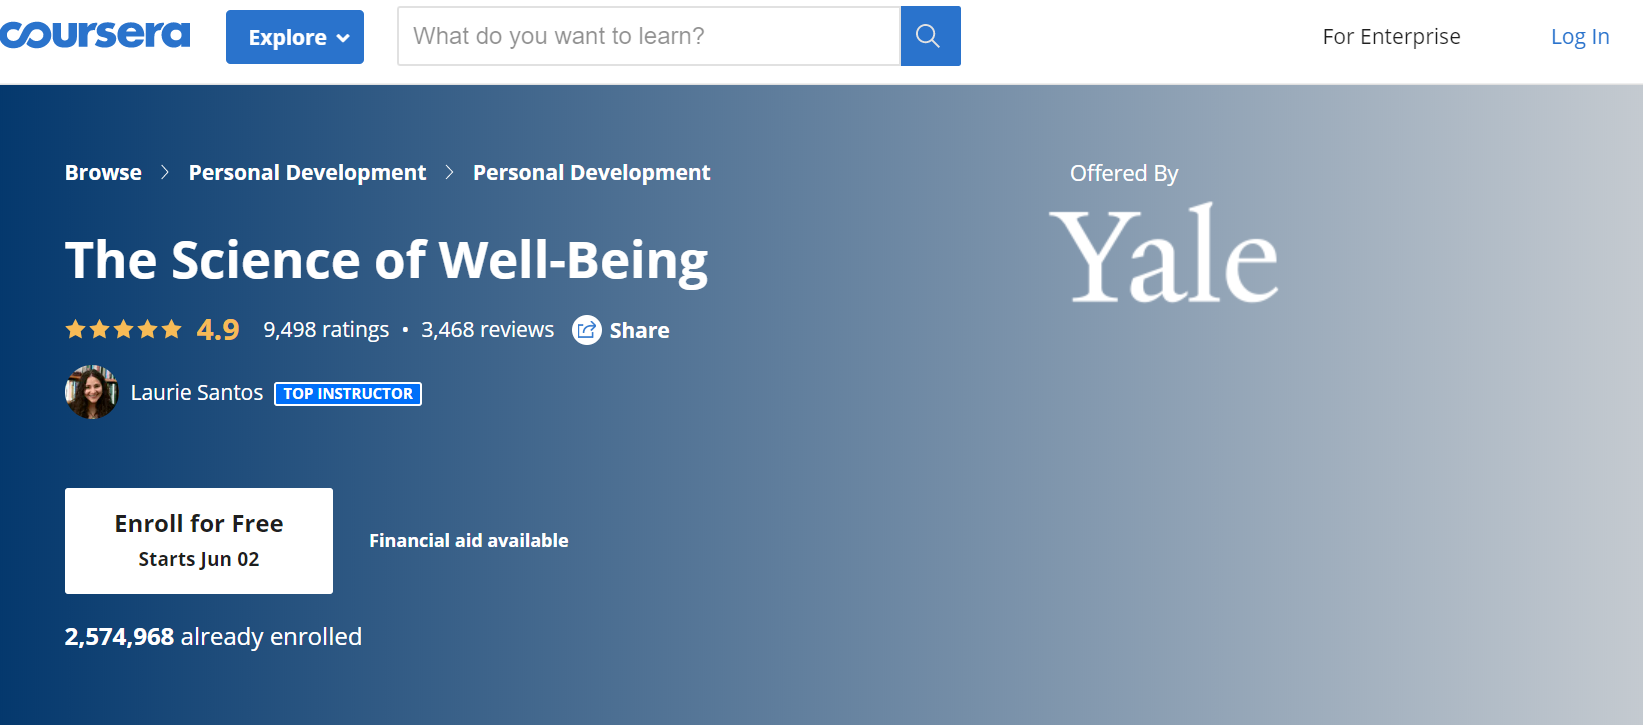 Yale's The Science of Well-Being in Coursera